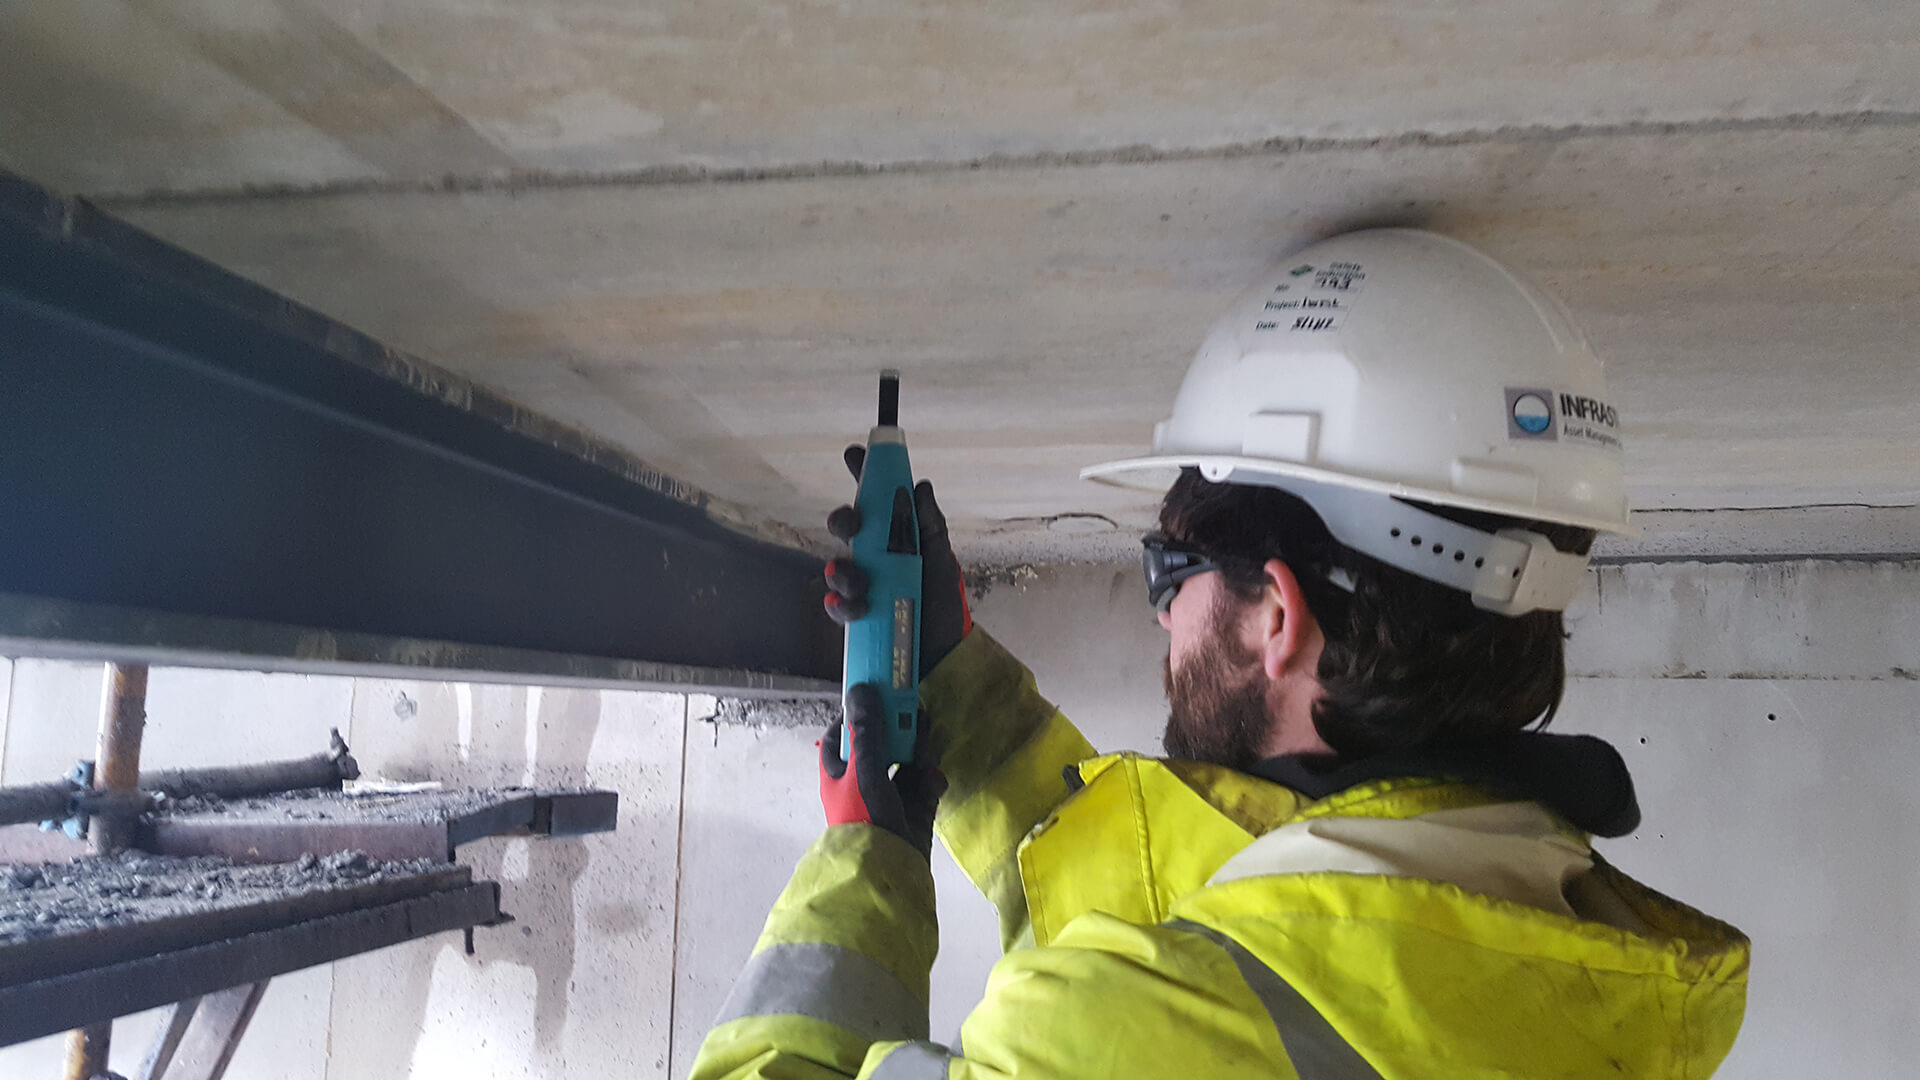 Rebound hammer surveys for in-situ strength of concrete - Infrastruct